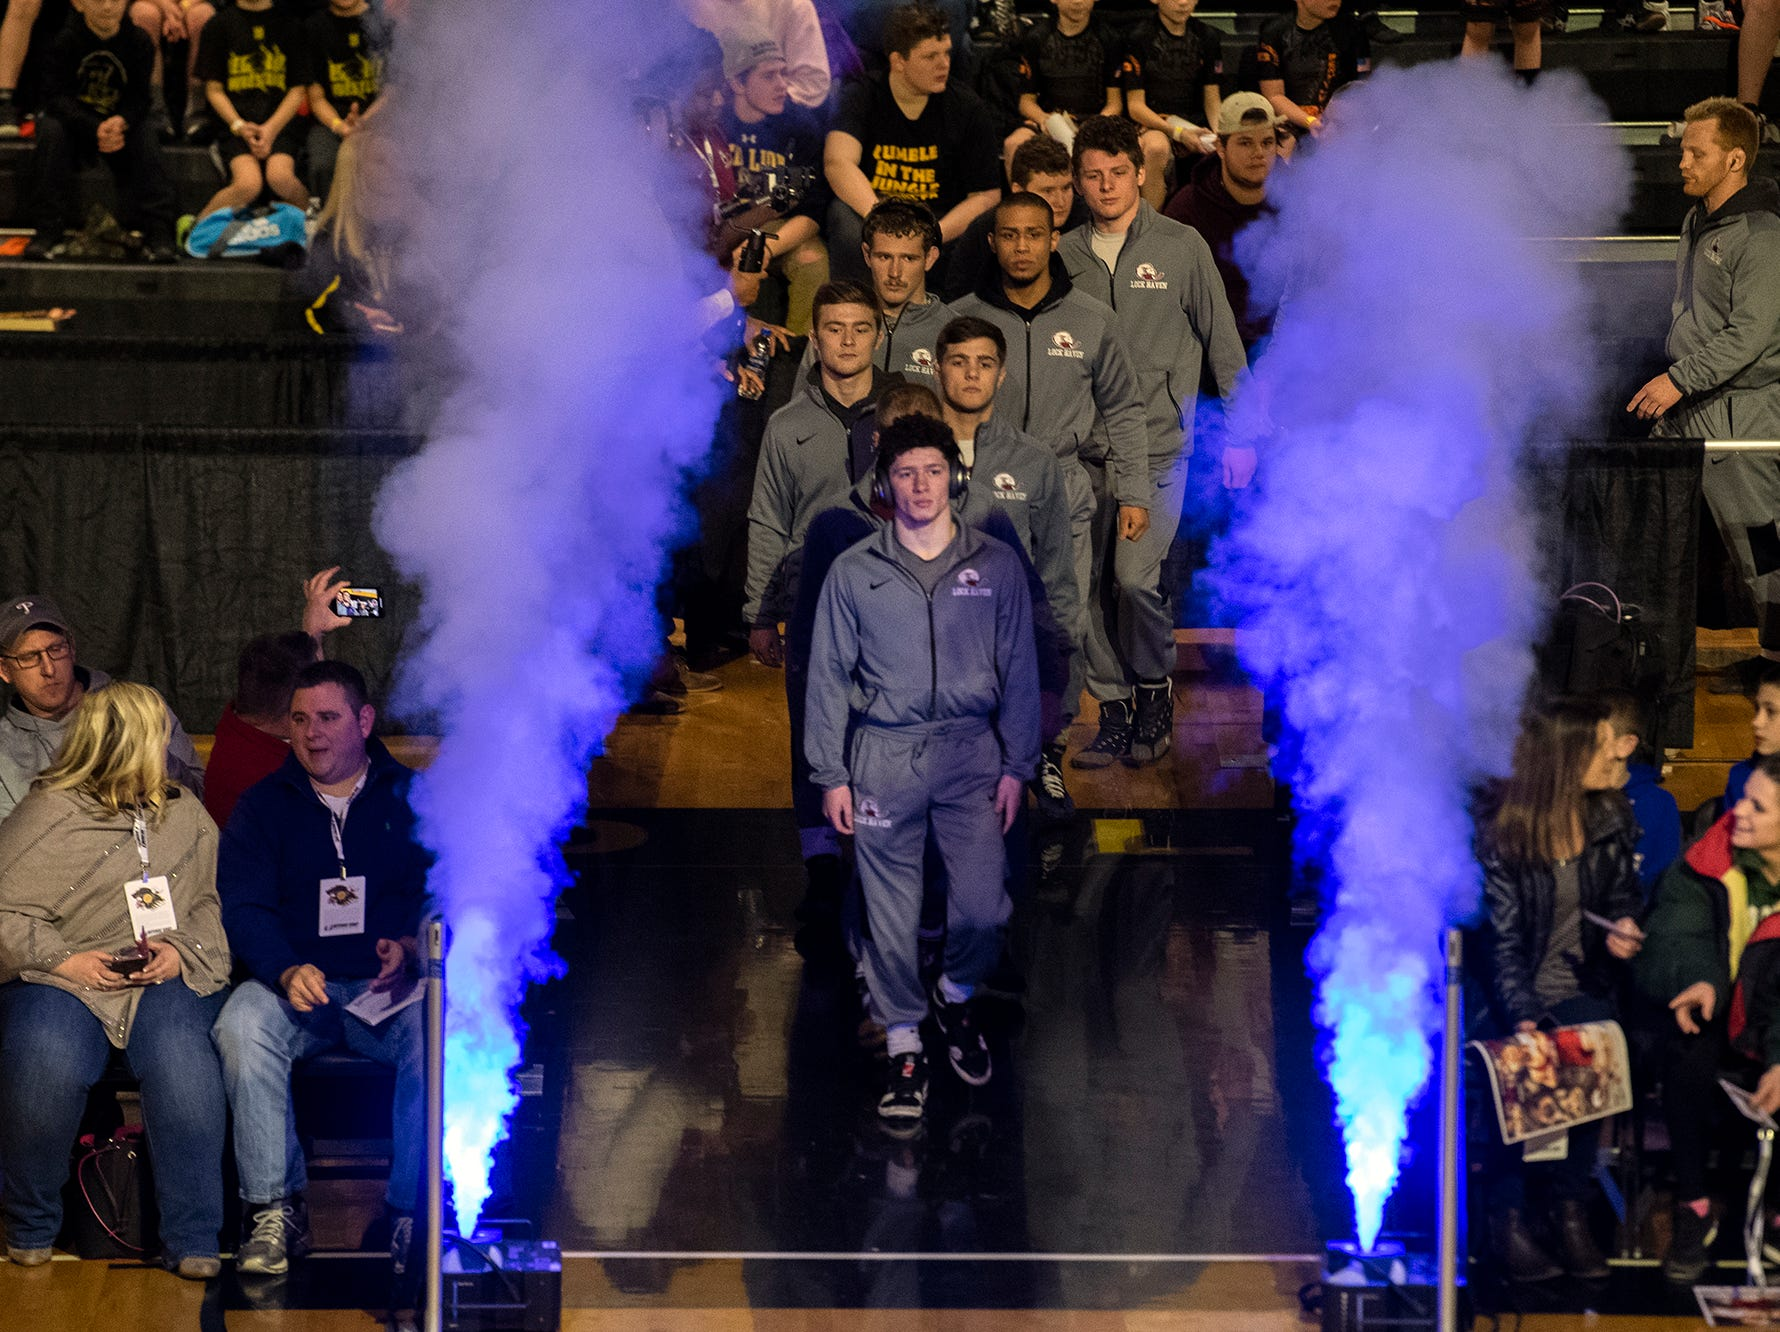 The Lock Haven wrestling team enters the mat at Red Lion's Fitzkee Athletic Center on Friday, Jan. 25, 2019. No. 22 Lock Haven upset No. 12 Arizona State, 23-14, in the first ever 'Rumble in the Jungle.'